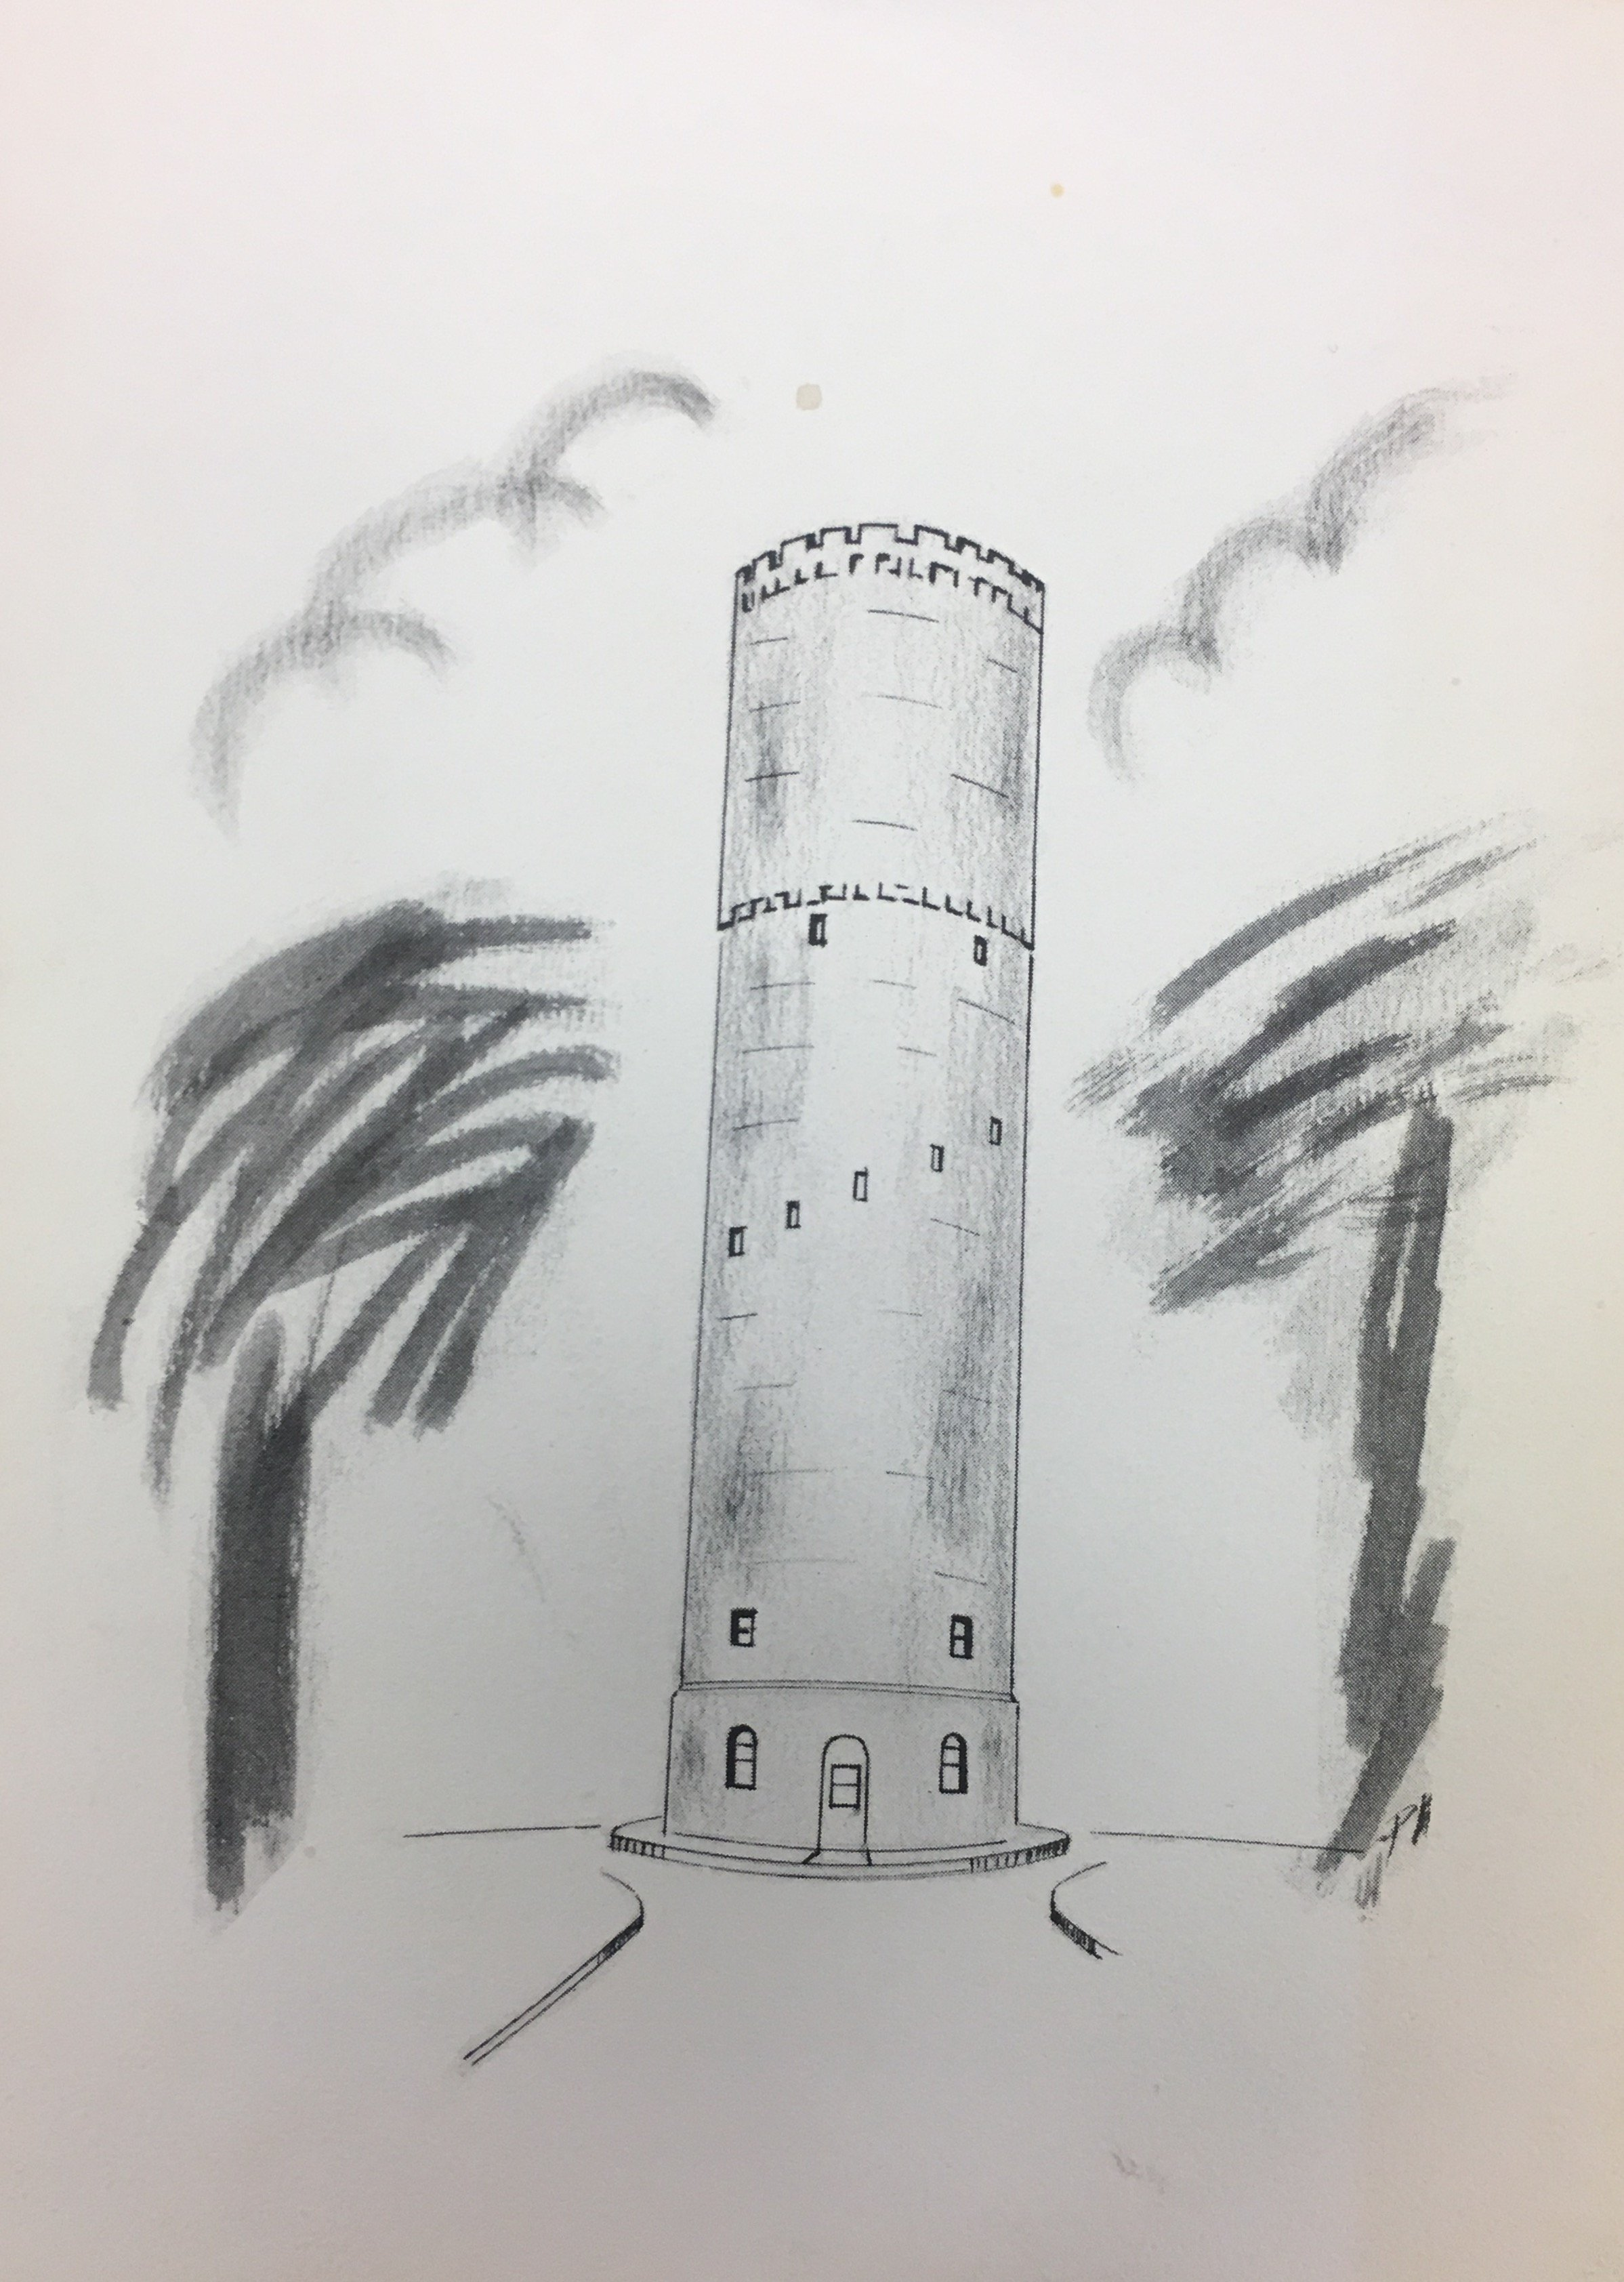 Here is a charcoal sketch of the Tower.